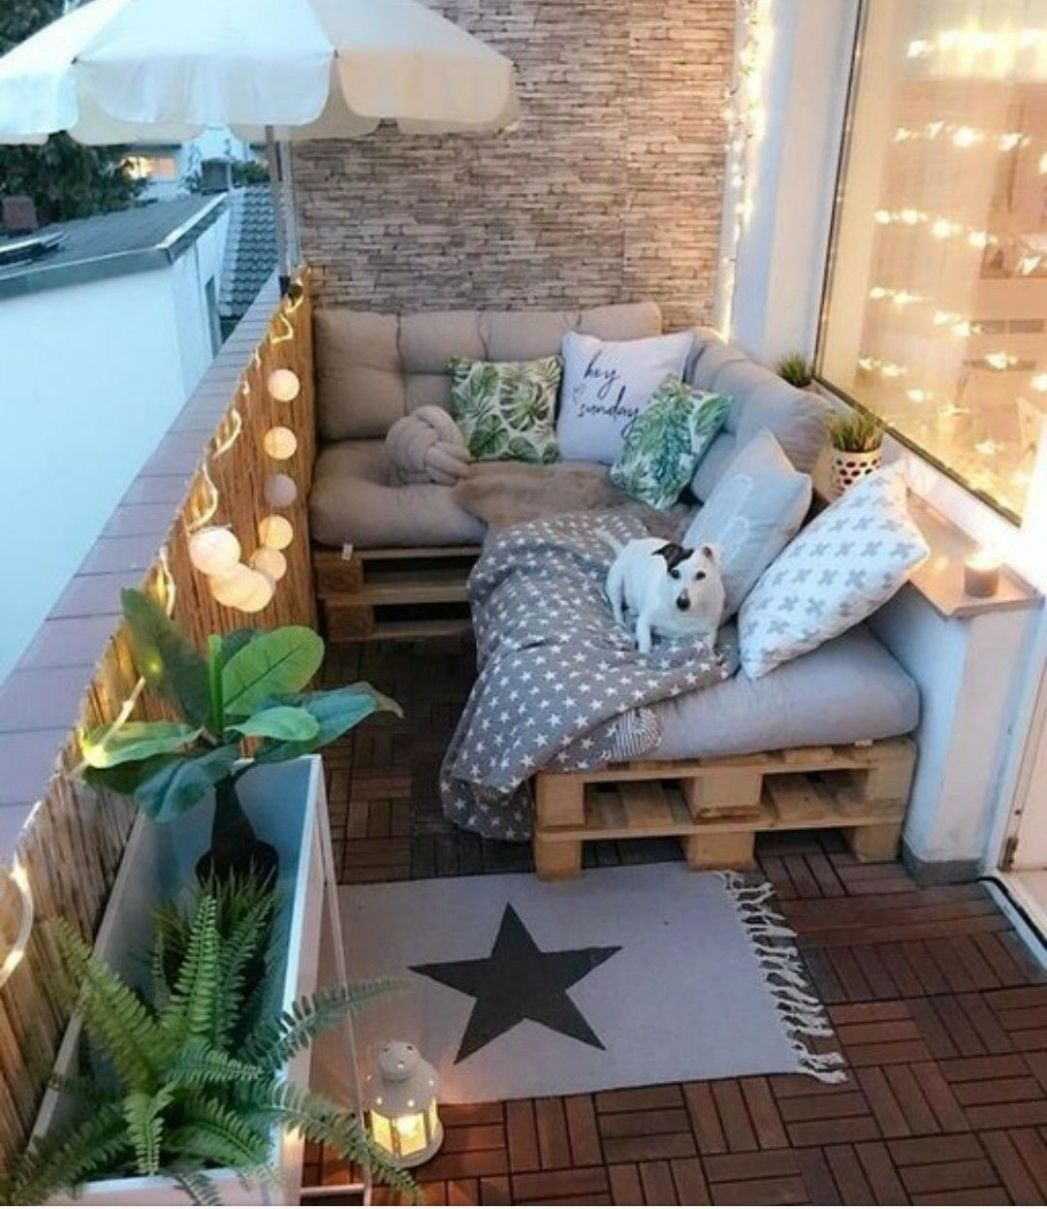 Small Balcony Ideas (With images) | Small balcony decor, First ...